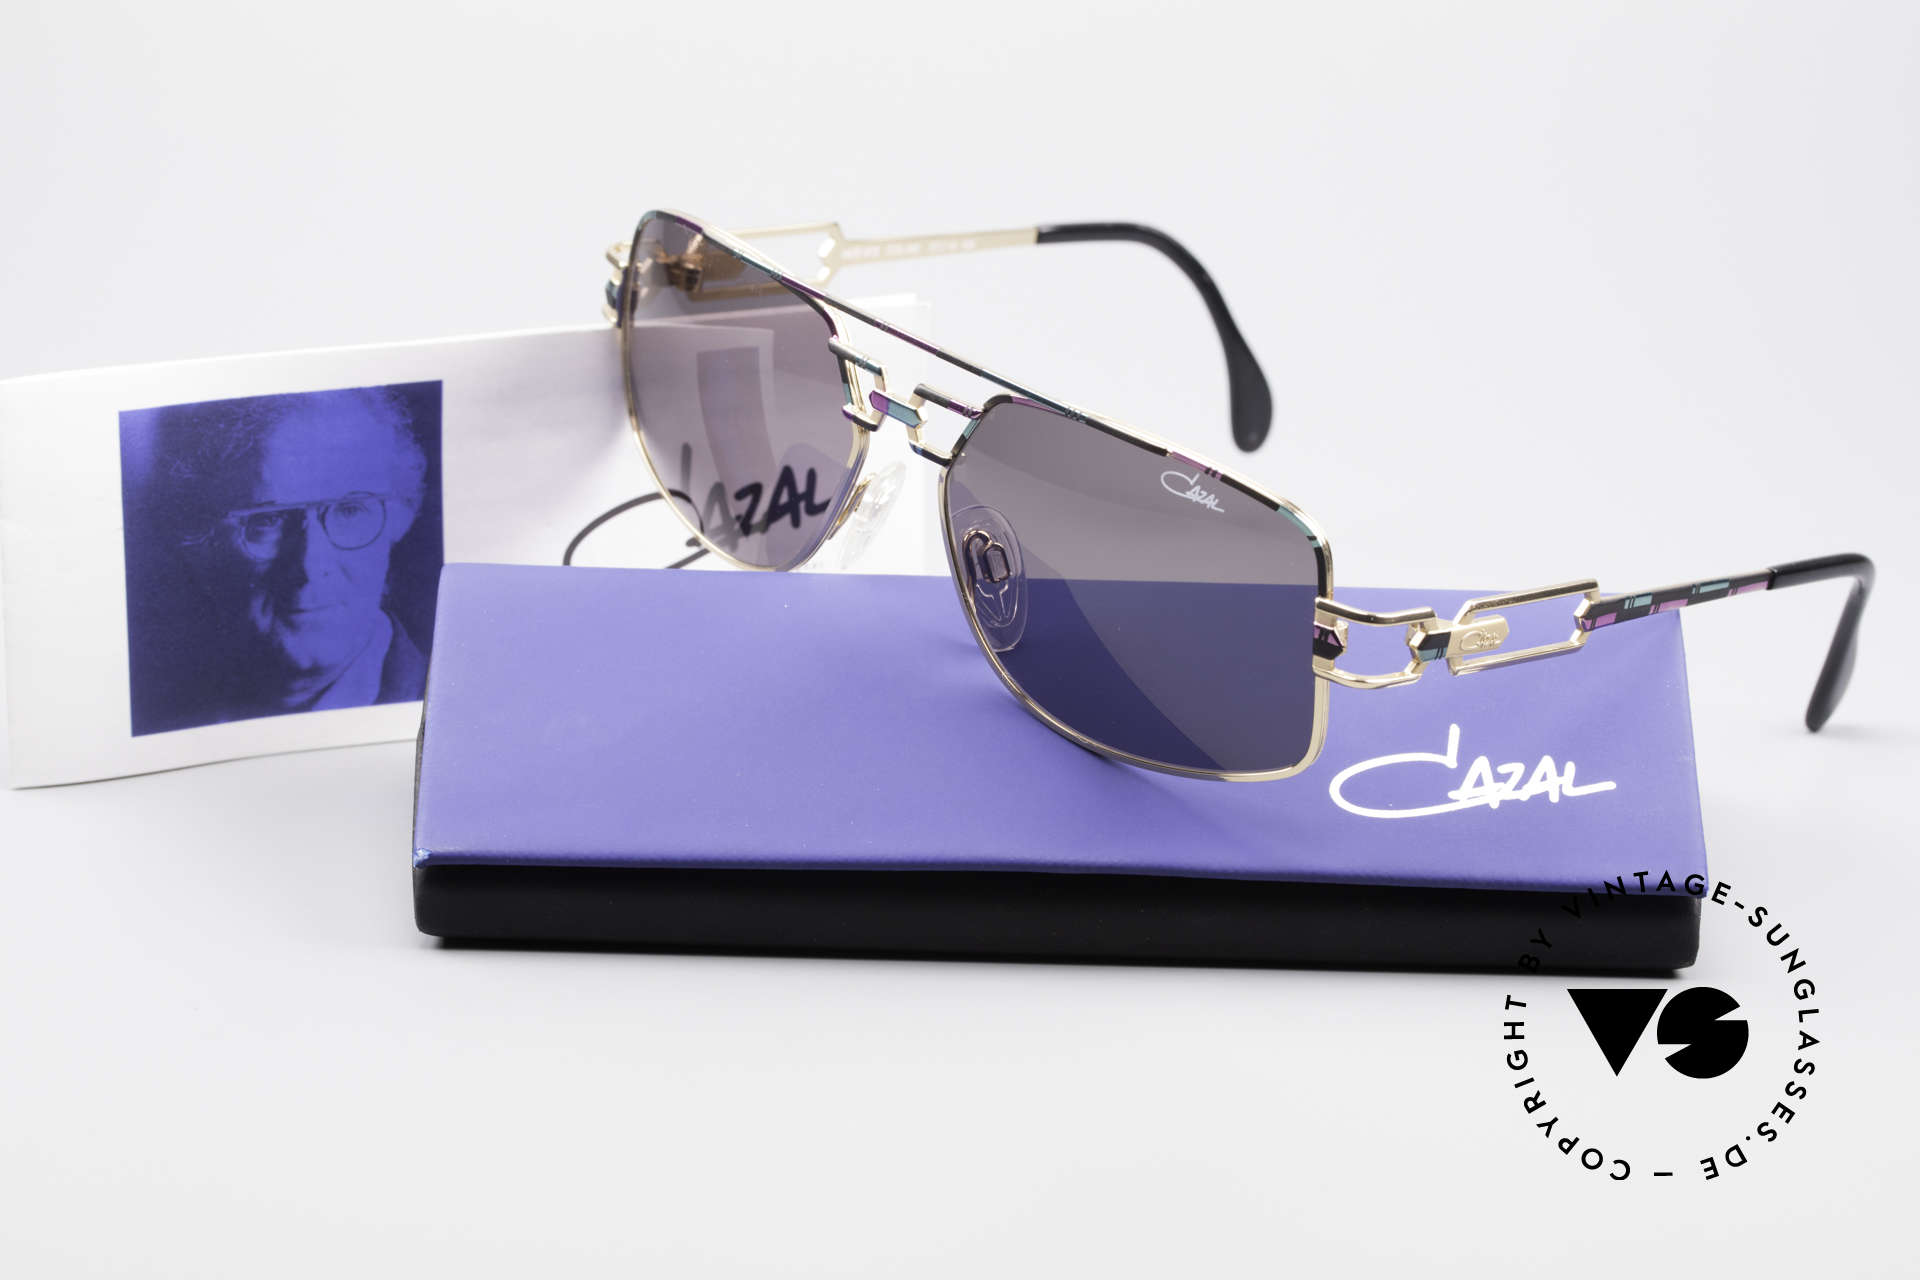 Cazal 972 No Retro Shades True Vintage, orig. gray CAZAL sun lenses with UV PROTECTION mark, Made for Men and Women